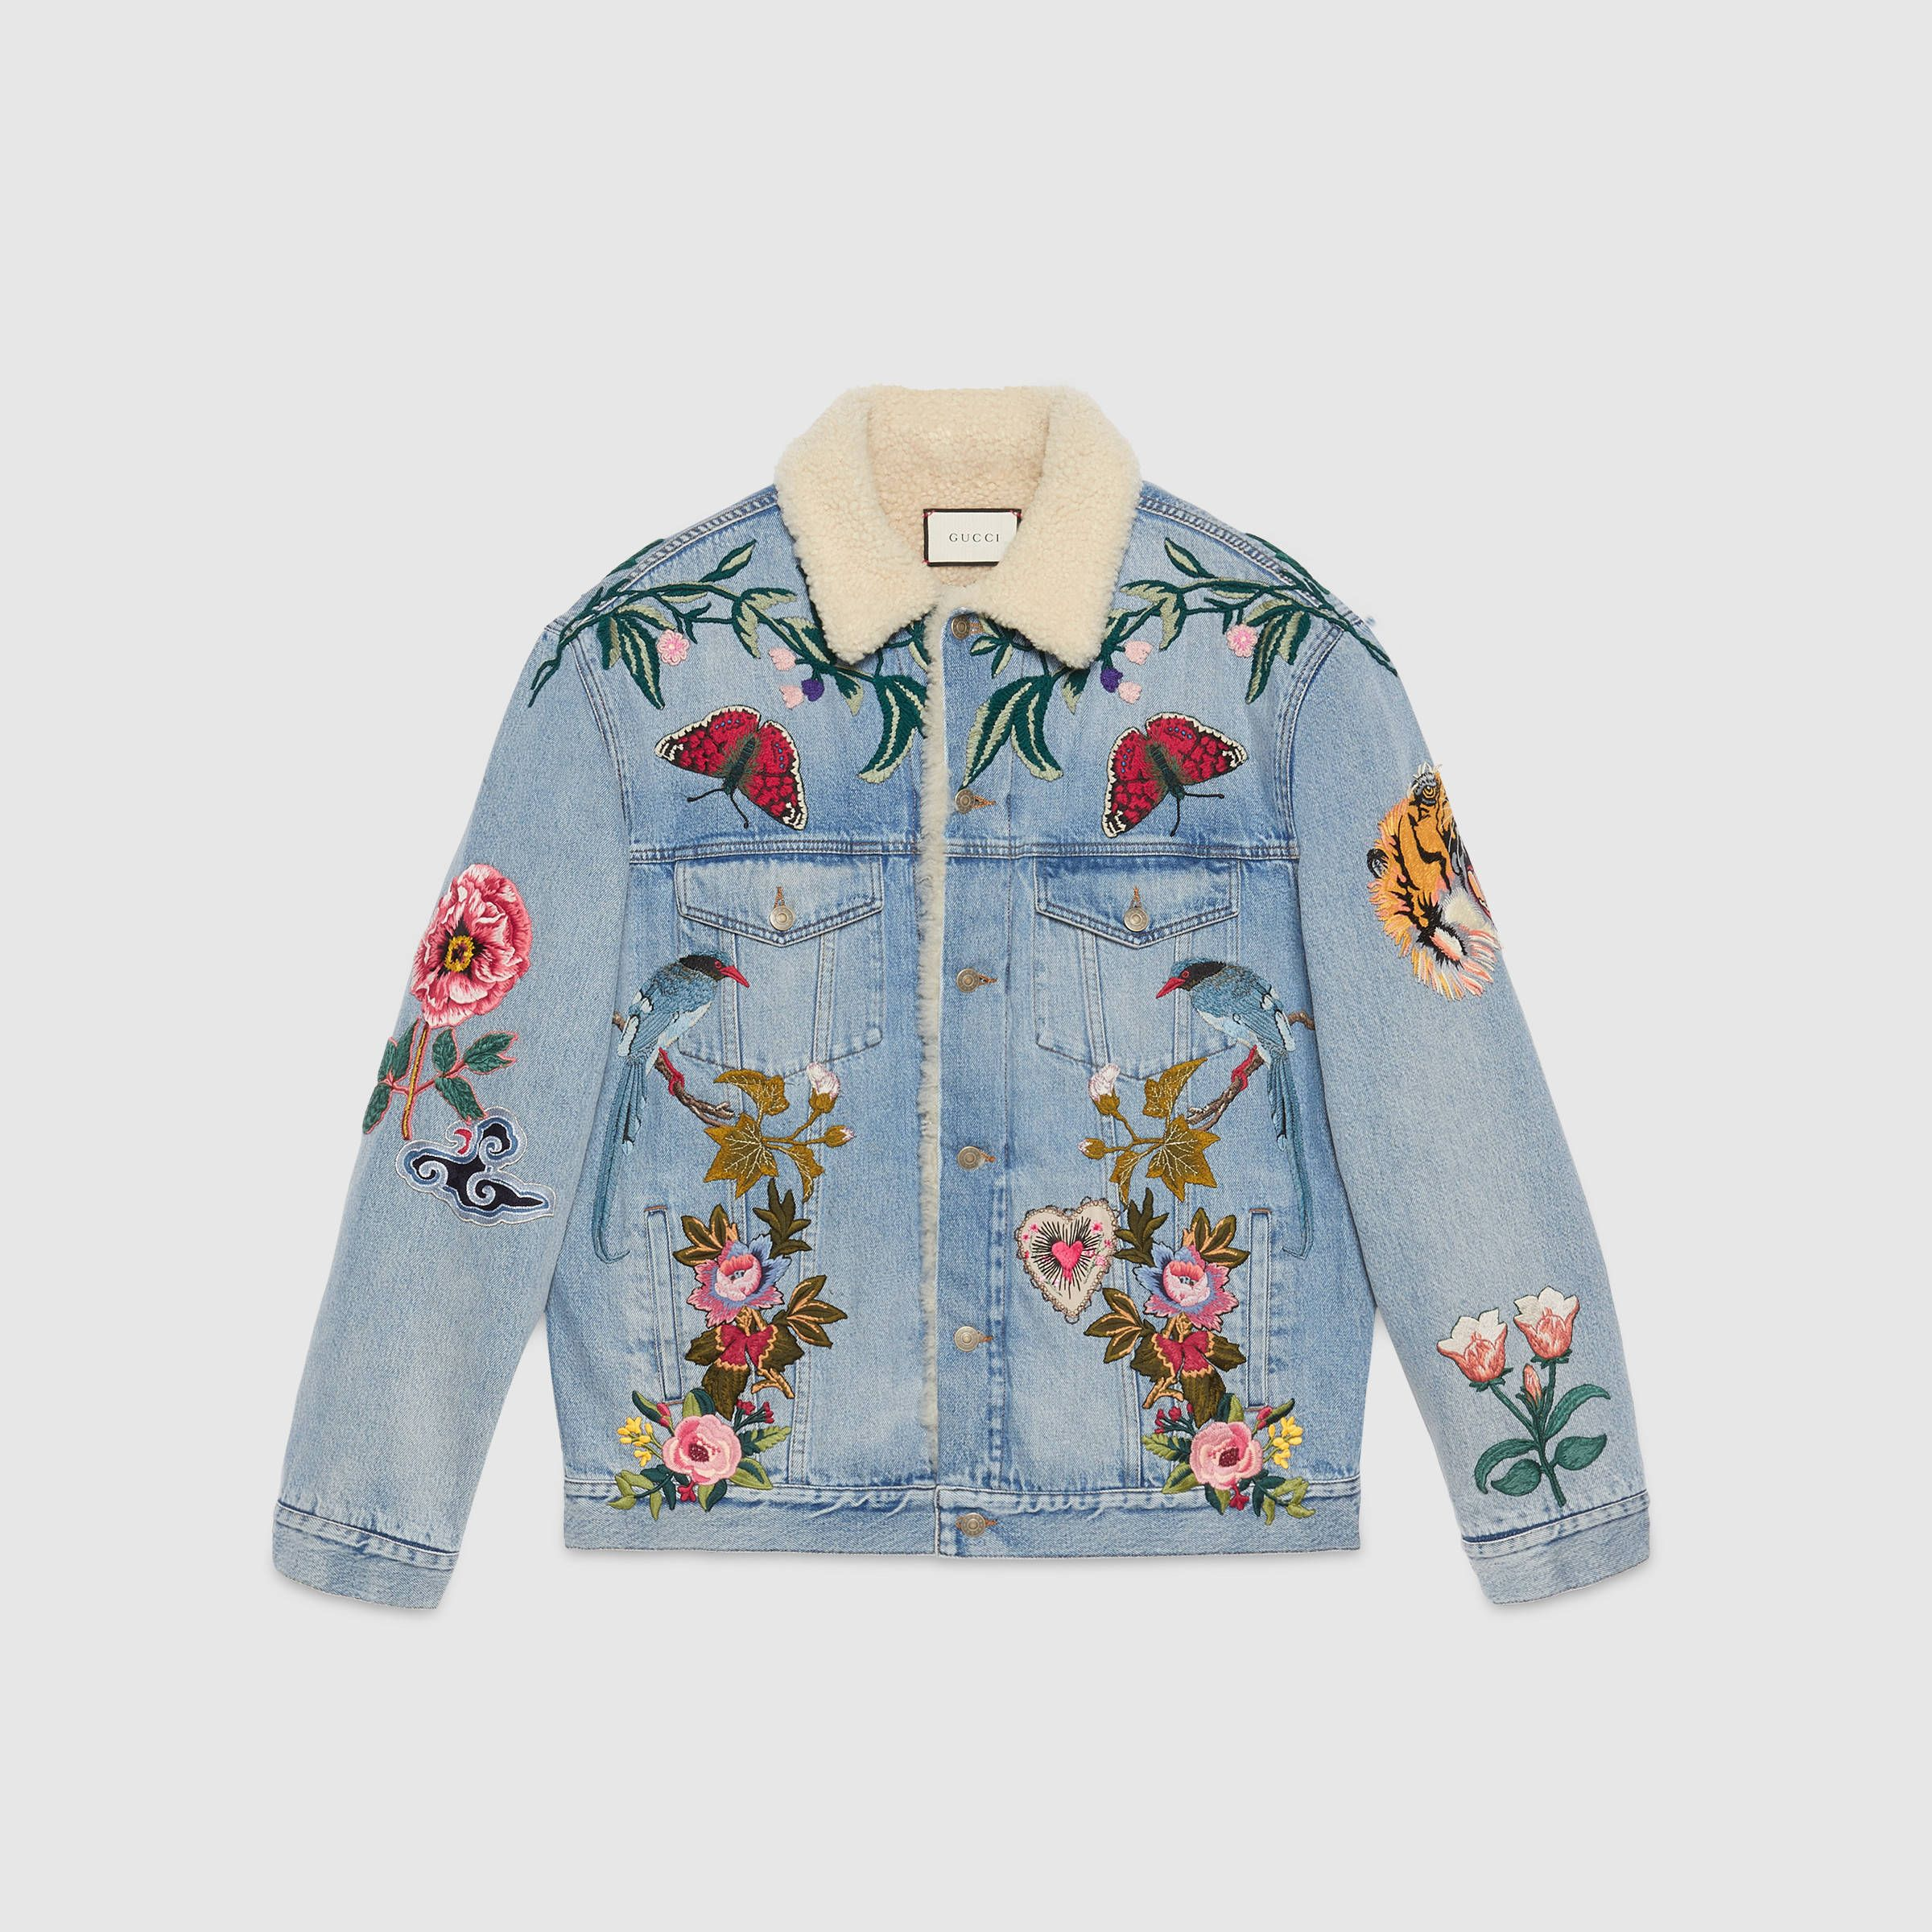 Shop the Embroidered denim jacket with shearling by Gucci. Inspired by a  patched denim jacket 65466b483ca